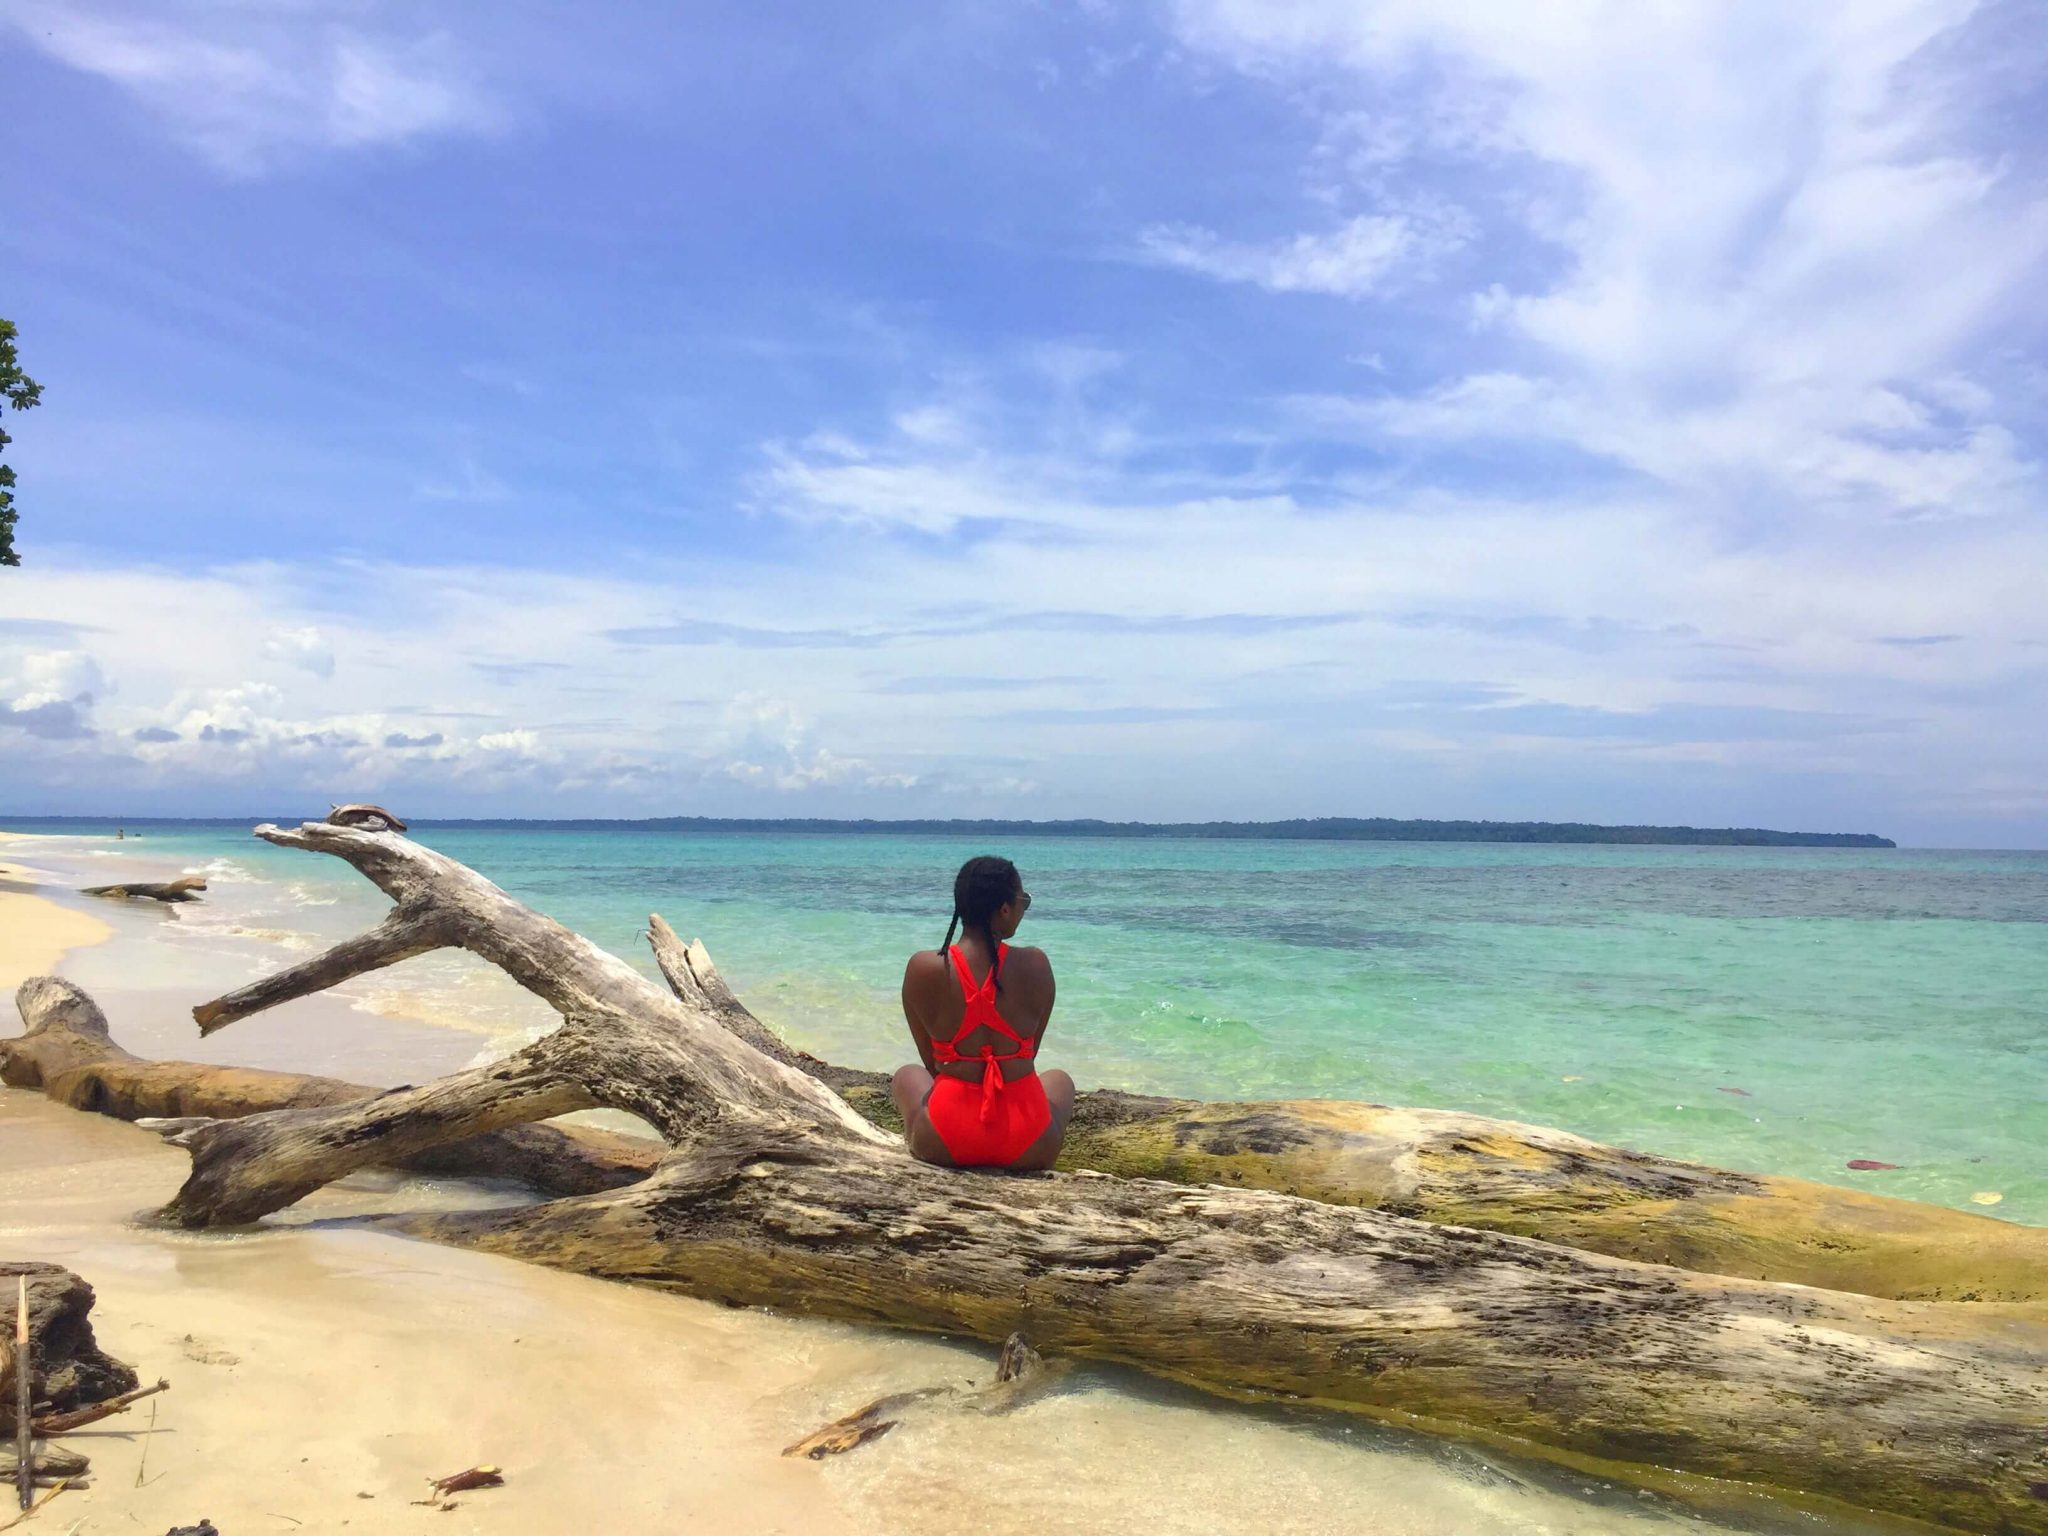 Bocas del Toro essential guide - everything you need to know - Guest post by Rosie Bell on Pty Life 2